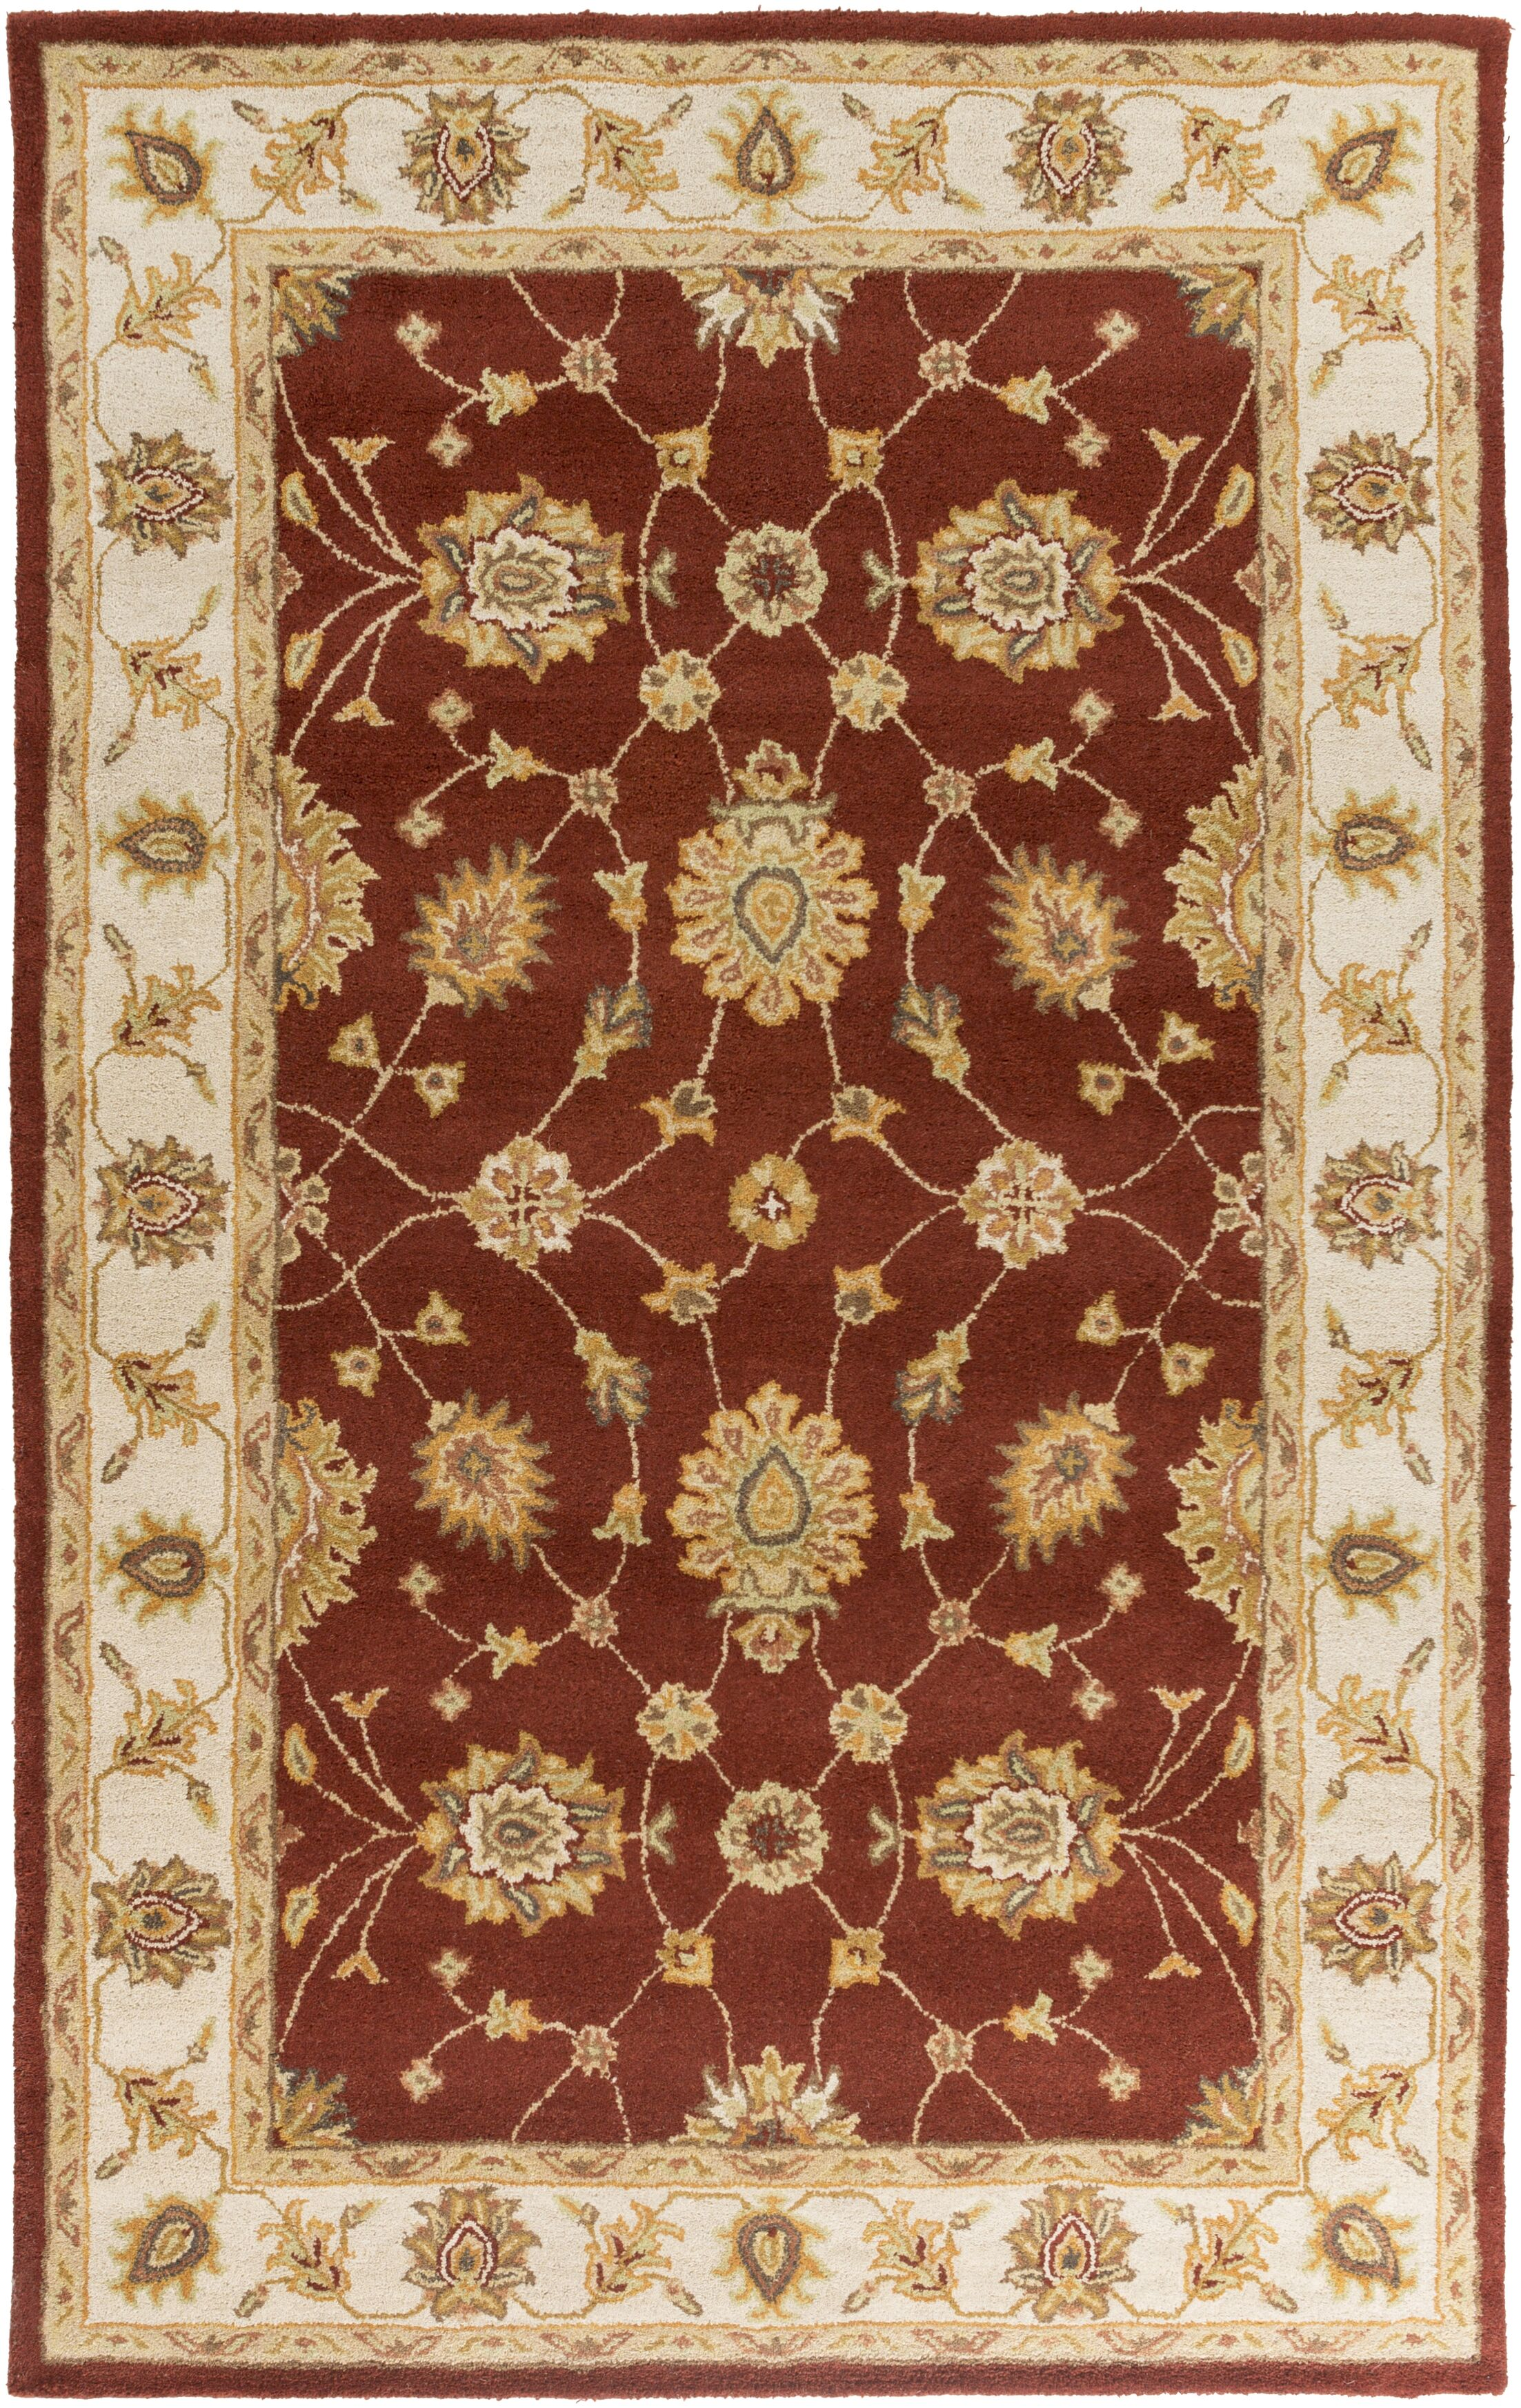 Plemmons Red Area Rug Rug Size: Rectangle 5' x 8'